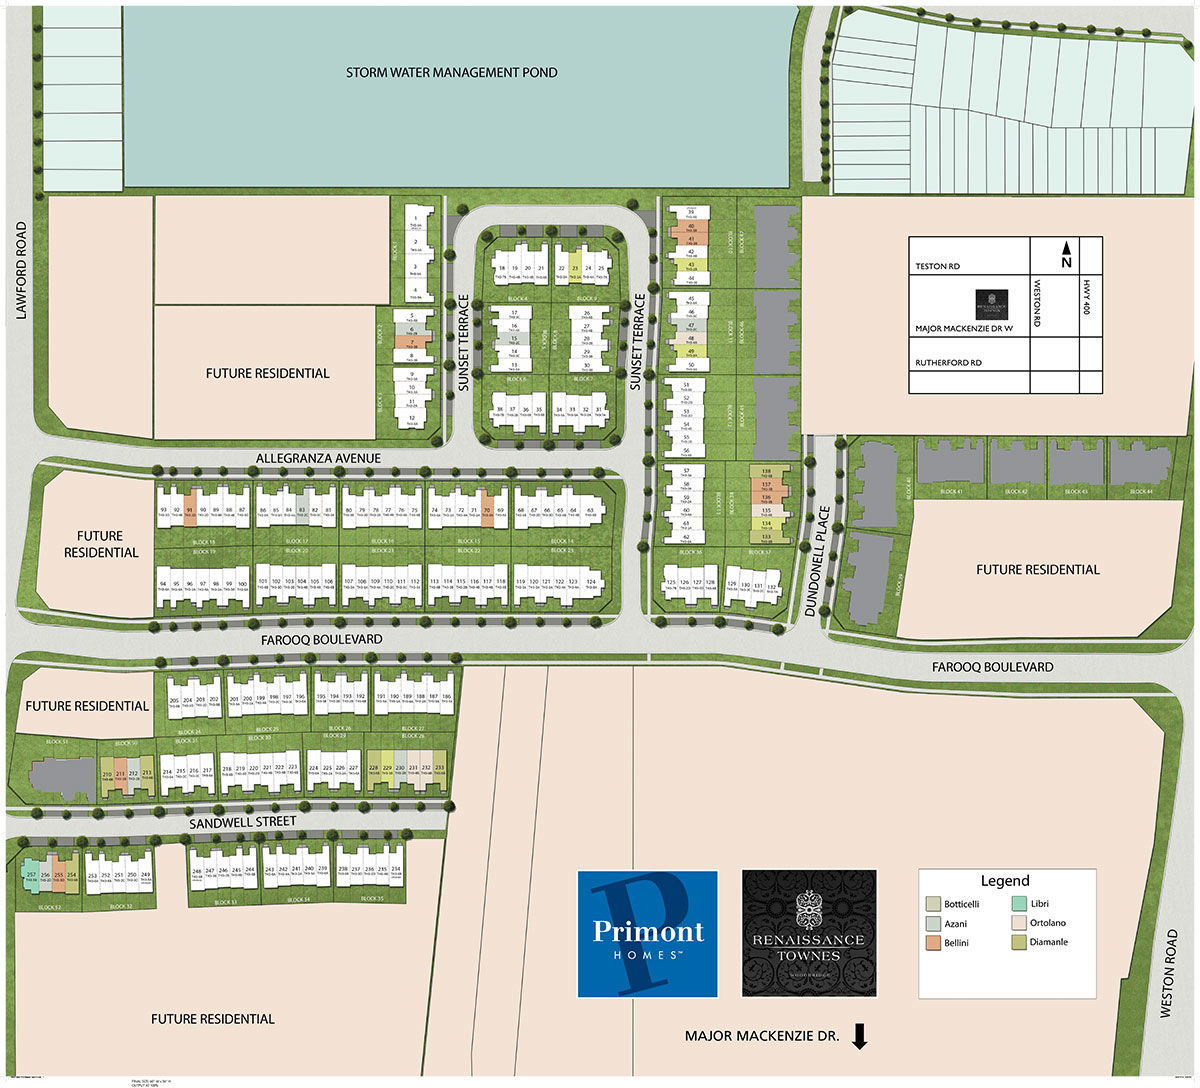 Renaissance townes in vaughan ontario plans prices for Home site plan